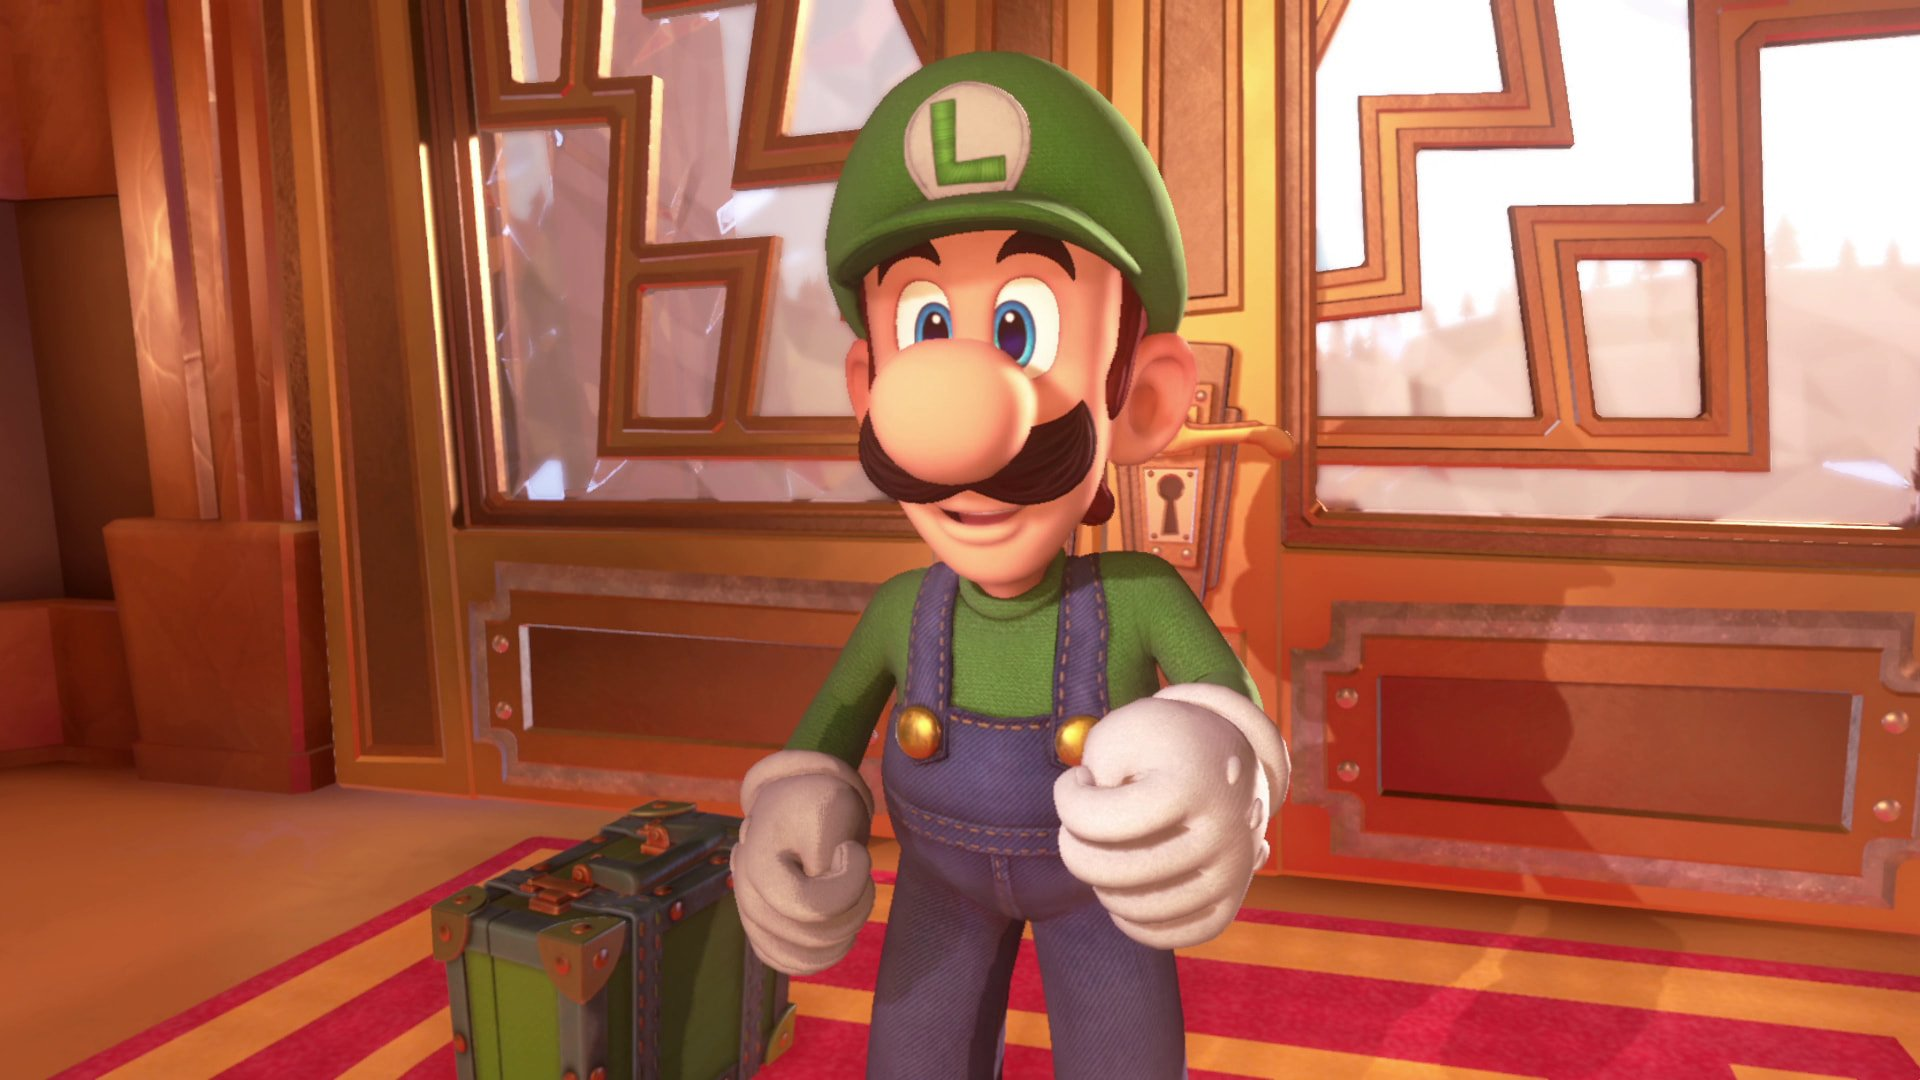 This Luigi S Mansion 3 Clip Just Melted Our Little Hearts